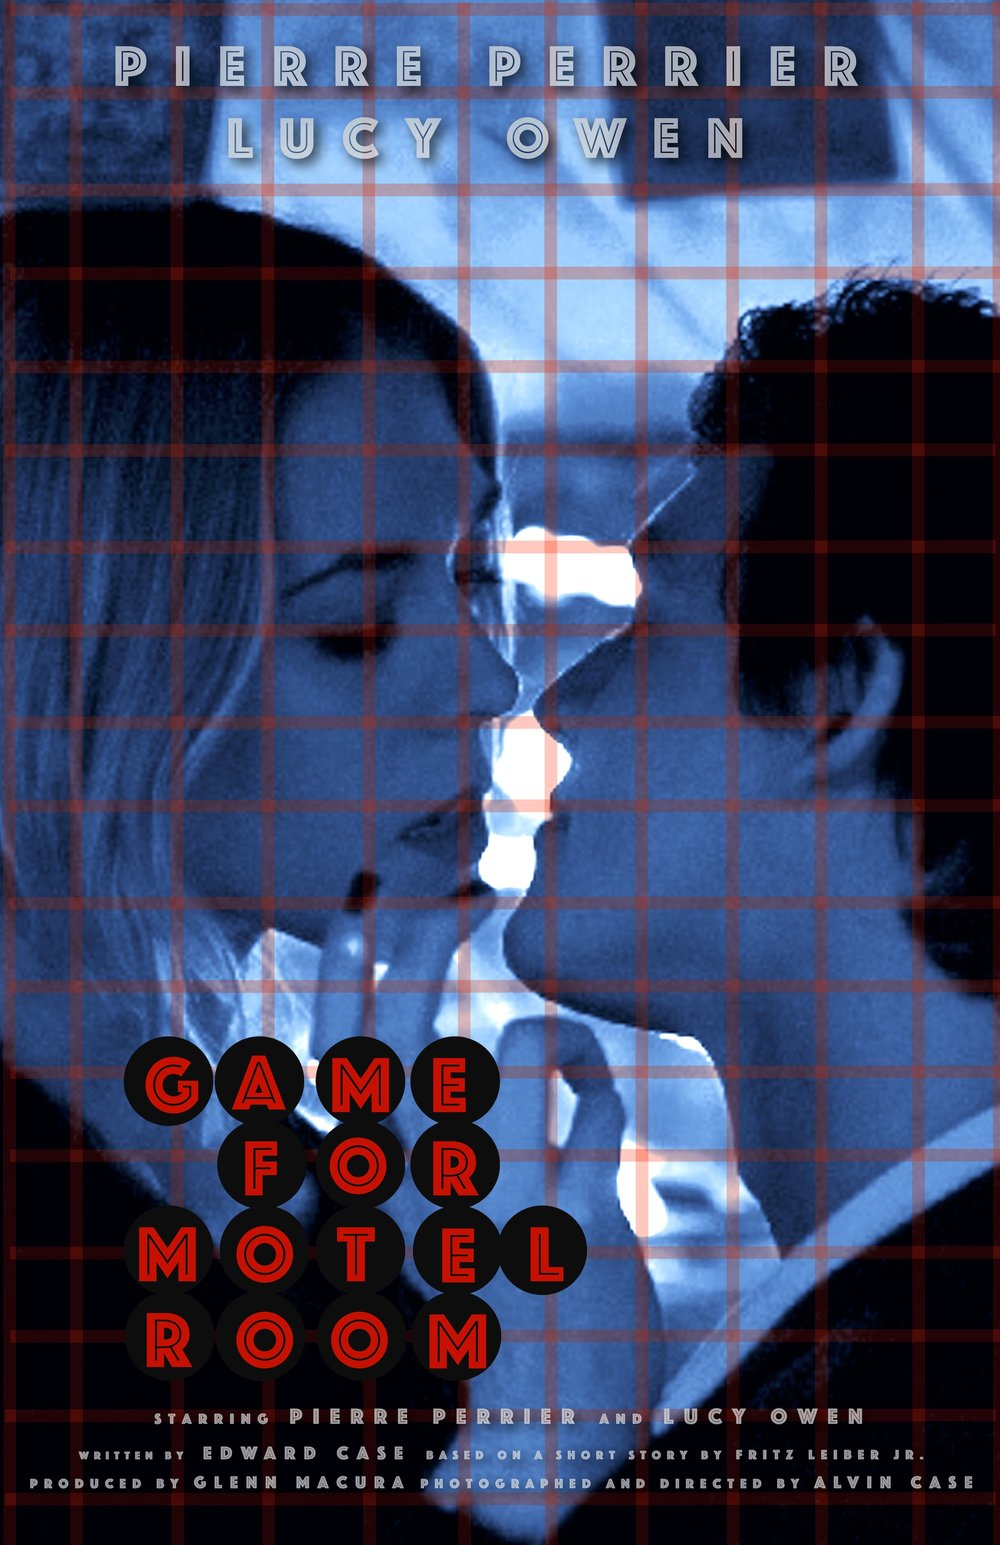 Game For Motel Room - Based on a Fritz Leiber Jr. science-fiction short story,Game For Motel Room centers on an itinerant man brought in for an unspecified job, which leads to a night on the town with a very odd and beautifully strange woman.